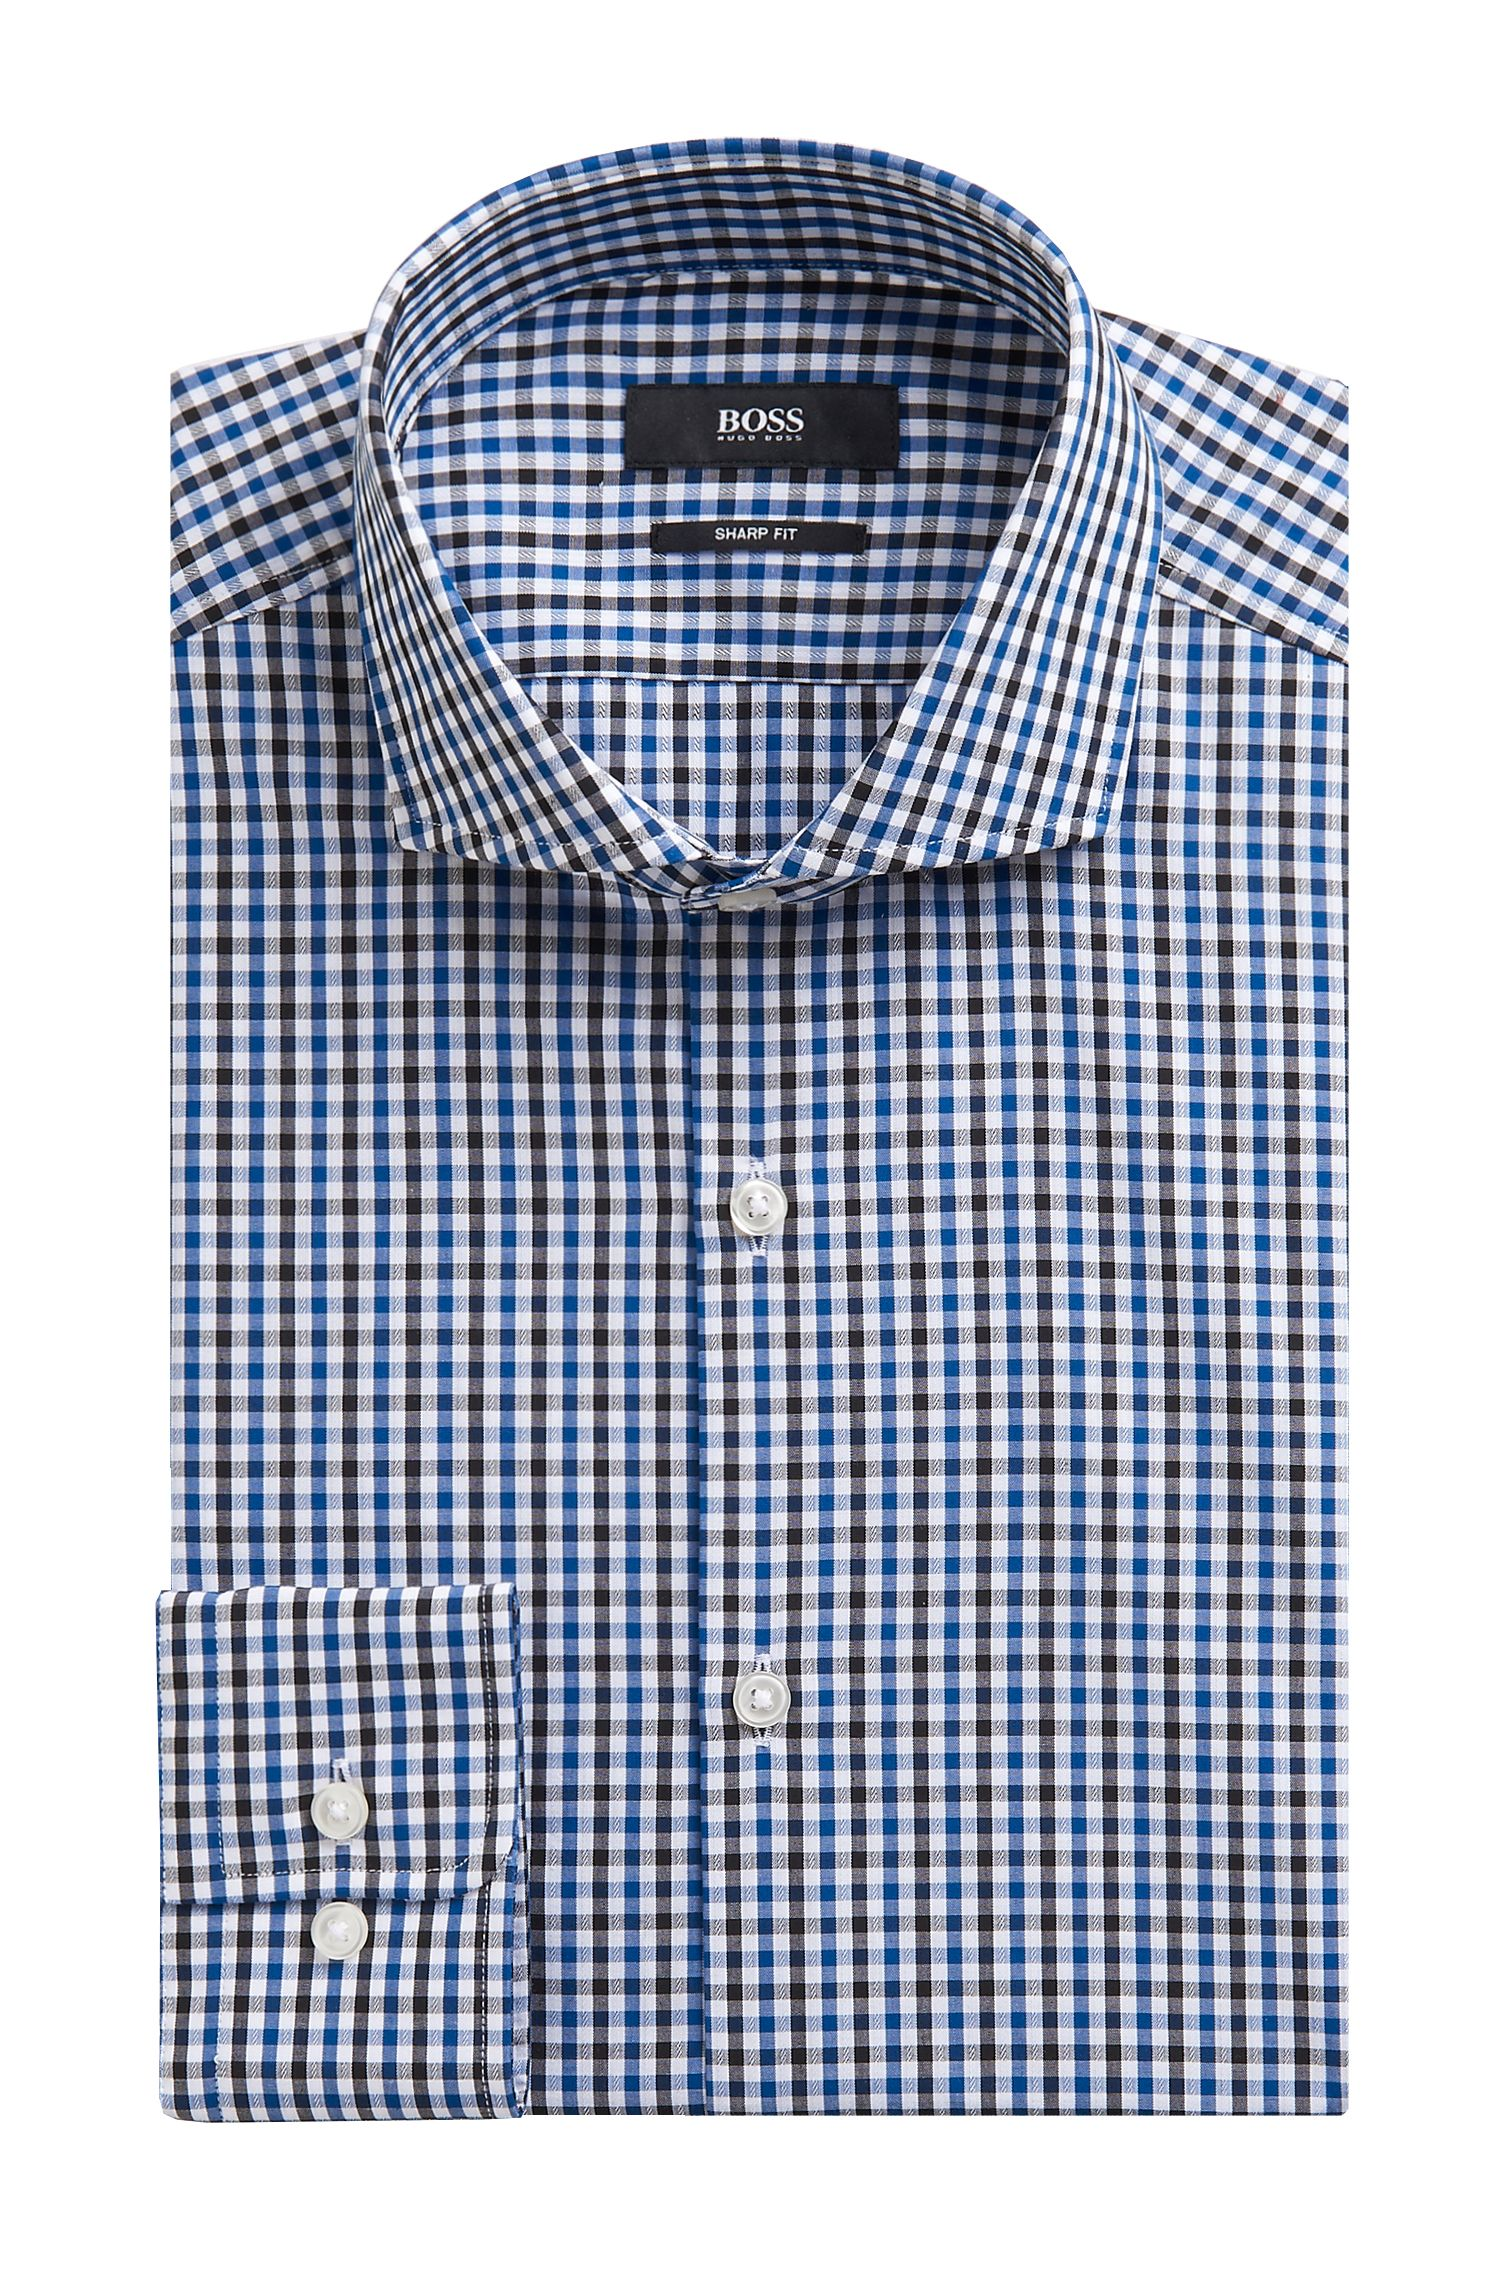 'Mark US' | Sharp Fit, Cotton Dress Shirt